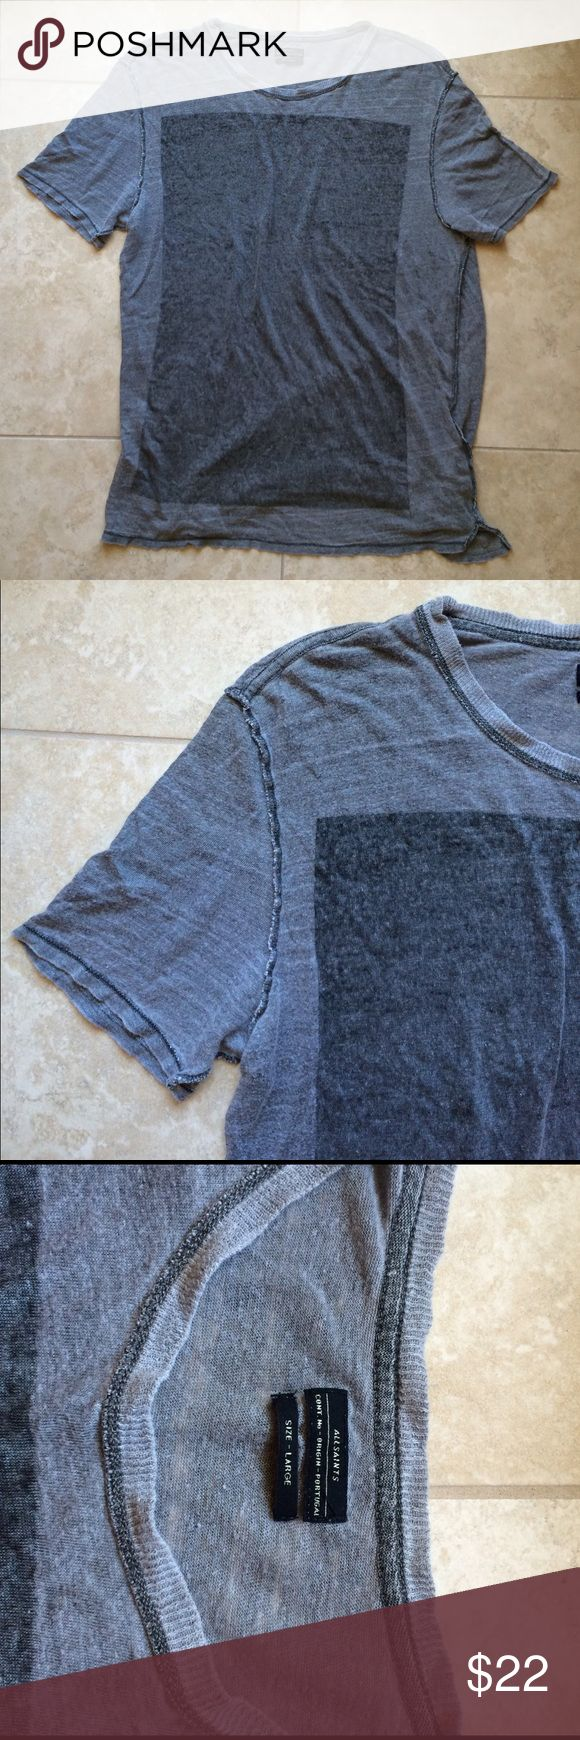 """All Saints mens/unisex linen tshirt Fabric tag no longer attached. All Saints gray lightweight linen mens tshirt but can be worn by a woman too, would look cute oversized. Mens size large. Nice preowned condition. Made to have a worn in look to it. Inside out seaming detailing. Length 30"""". Pit to pit 22"""". Price firm!!! All Saints Shirts"""